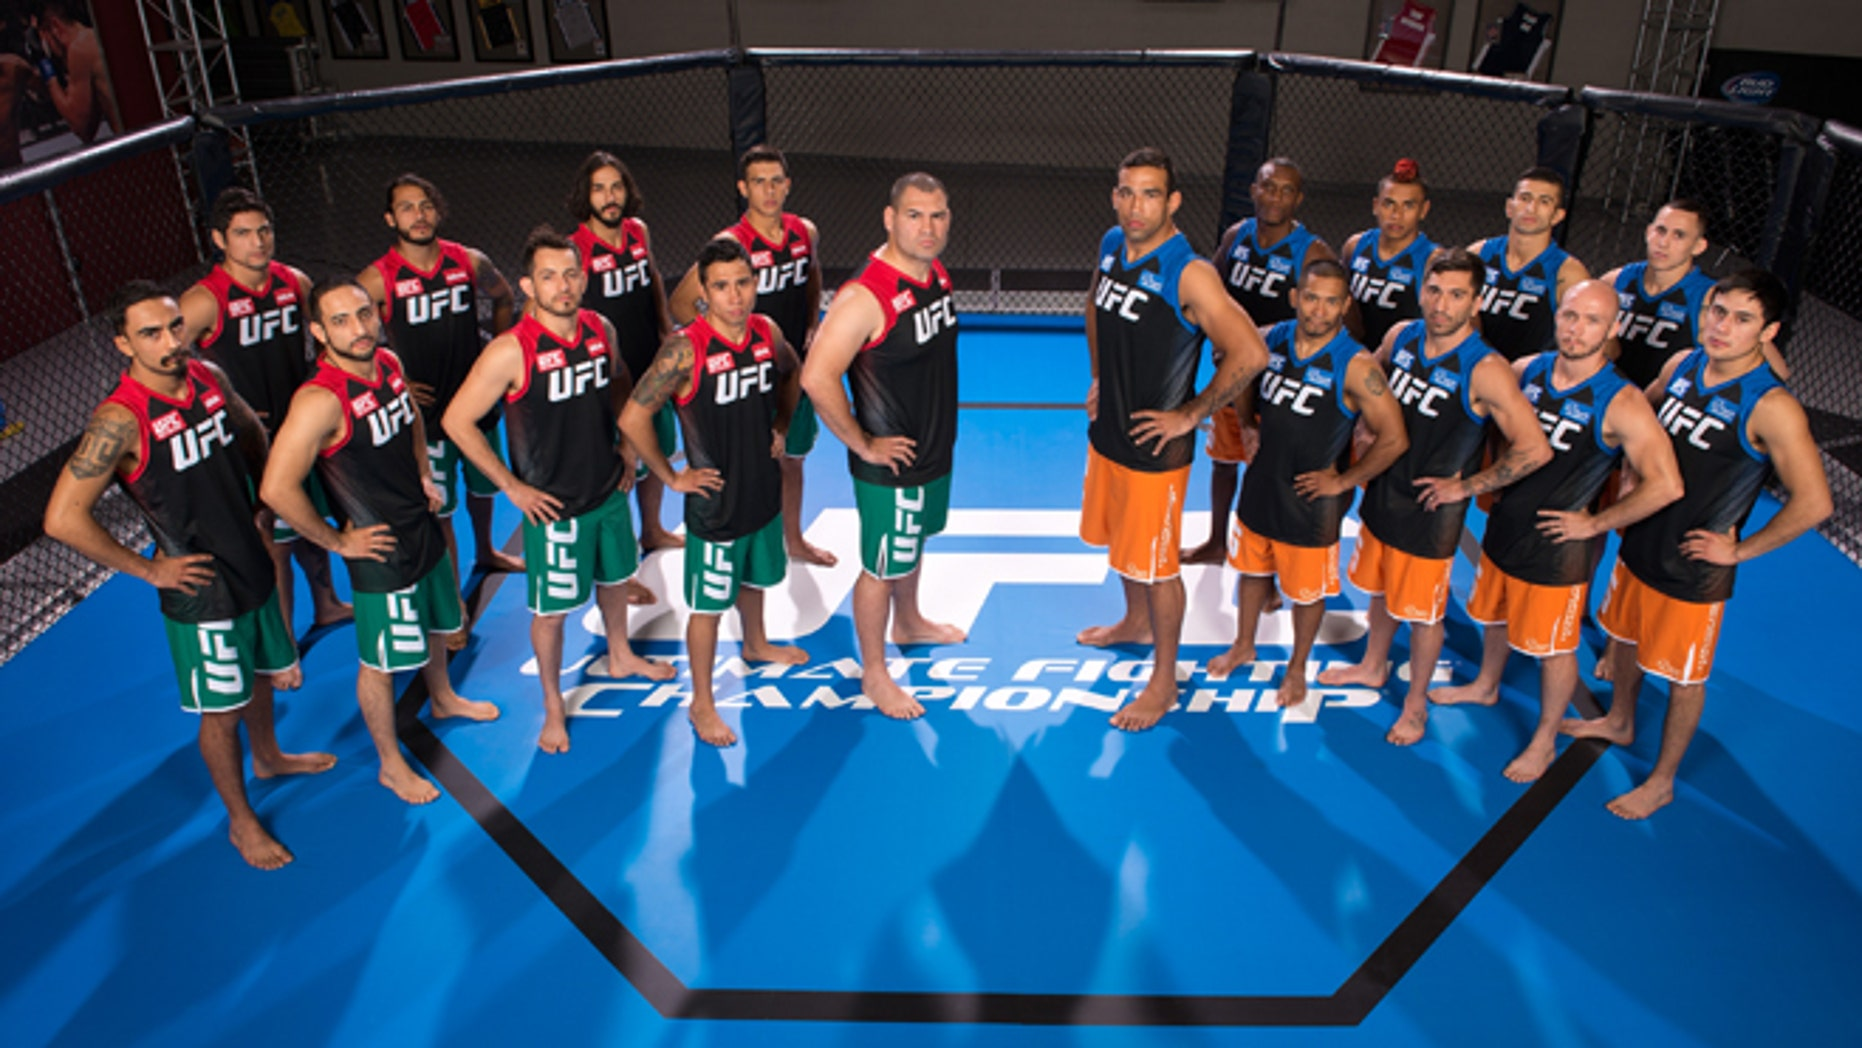 LAS VEGAS, NV - MAY 15:  Team Velasquez and Team Werdum pose for a group portrait inside the Octagon on media day during filming of The Ultimate Fighter Latin America on May 15, 2014 in Las Vegas, Nevada. (Photo by Jeff Bottari/Zuffa LLC/Zuffa LLC via Getty Images) *** Local Caption ***Cain Velasquez; Fabricio Werdum